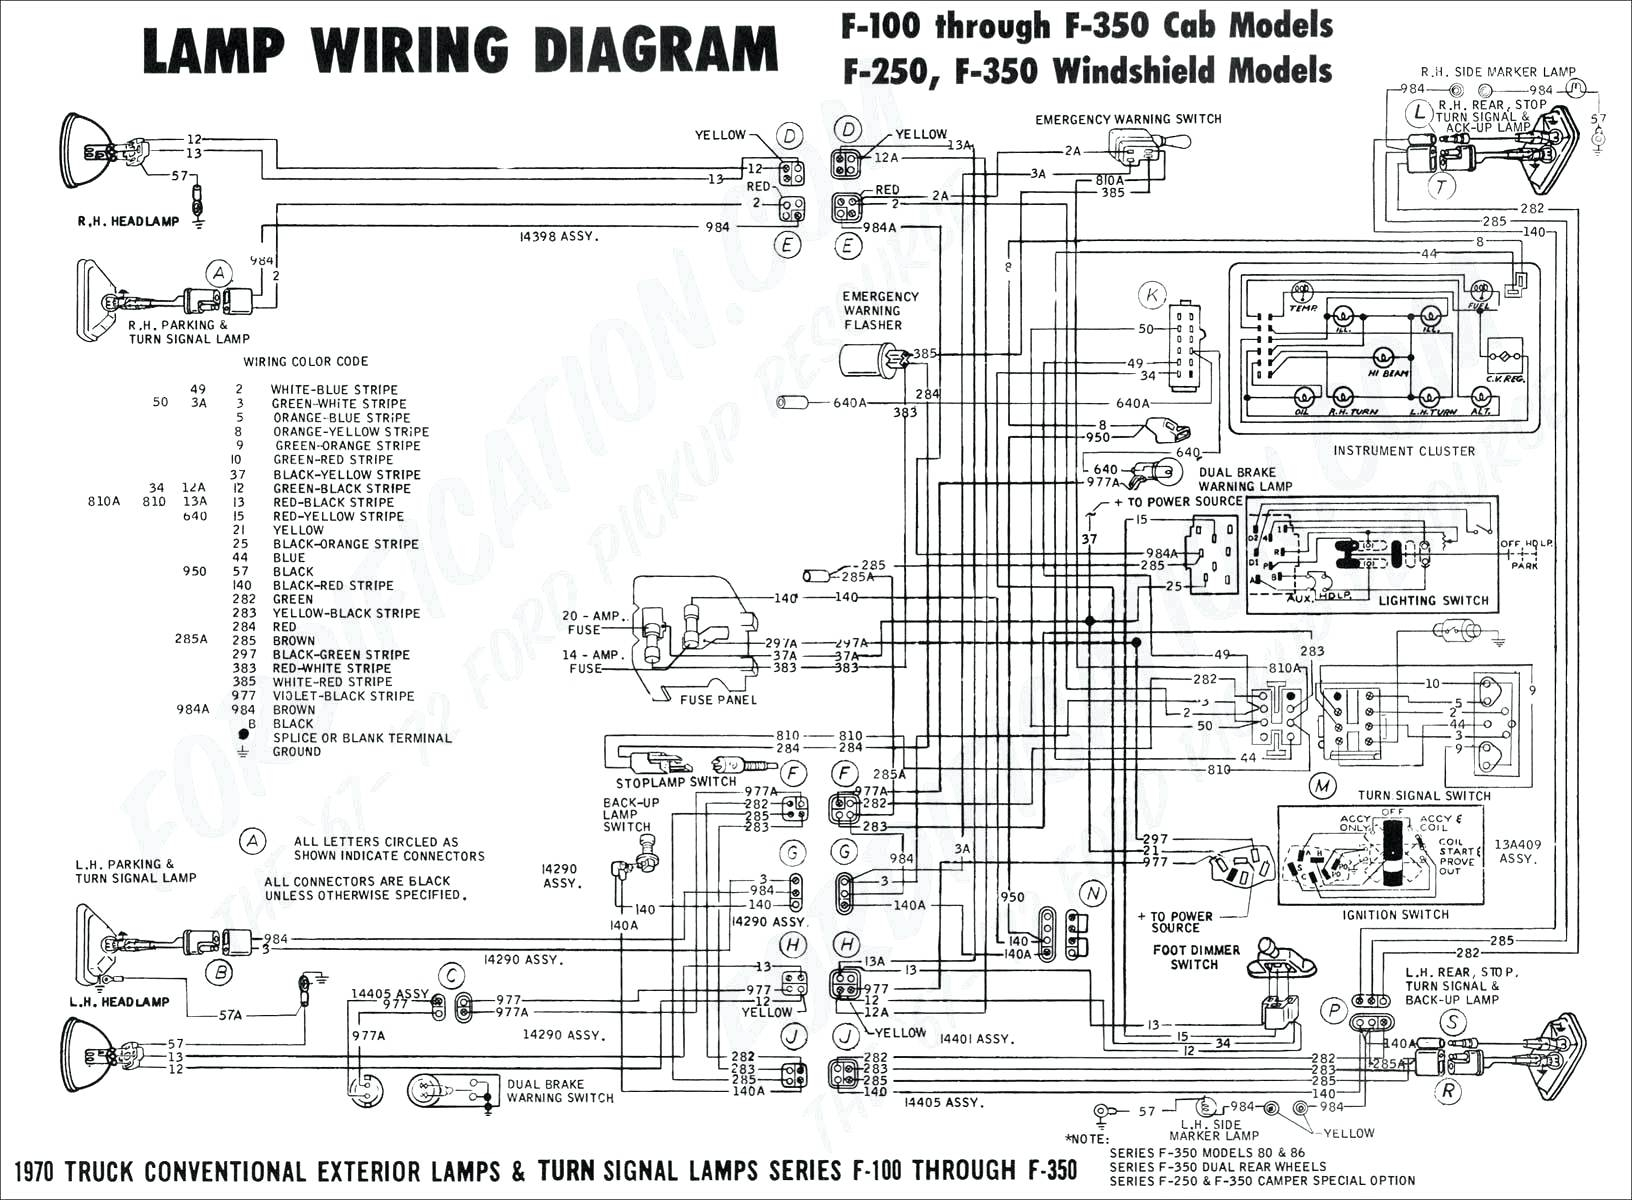 1972 Fiat Spider Wiring Diagram Full Hd Version Wiring Diagram Cluster Diagrams Kuteportal Fr